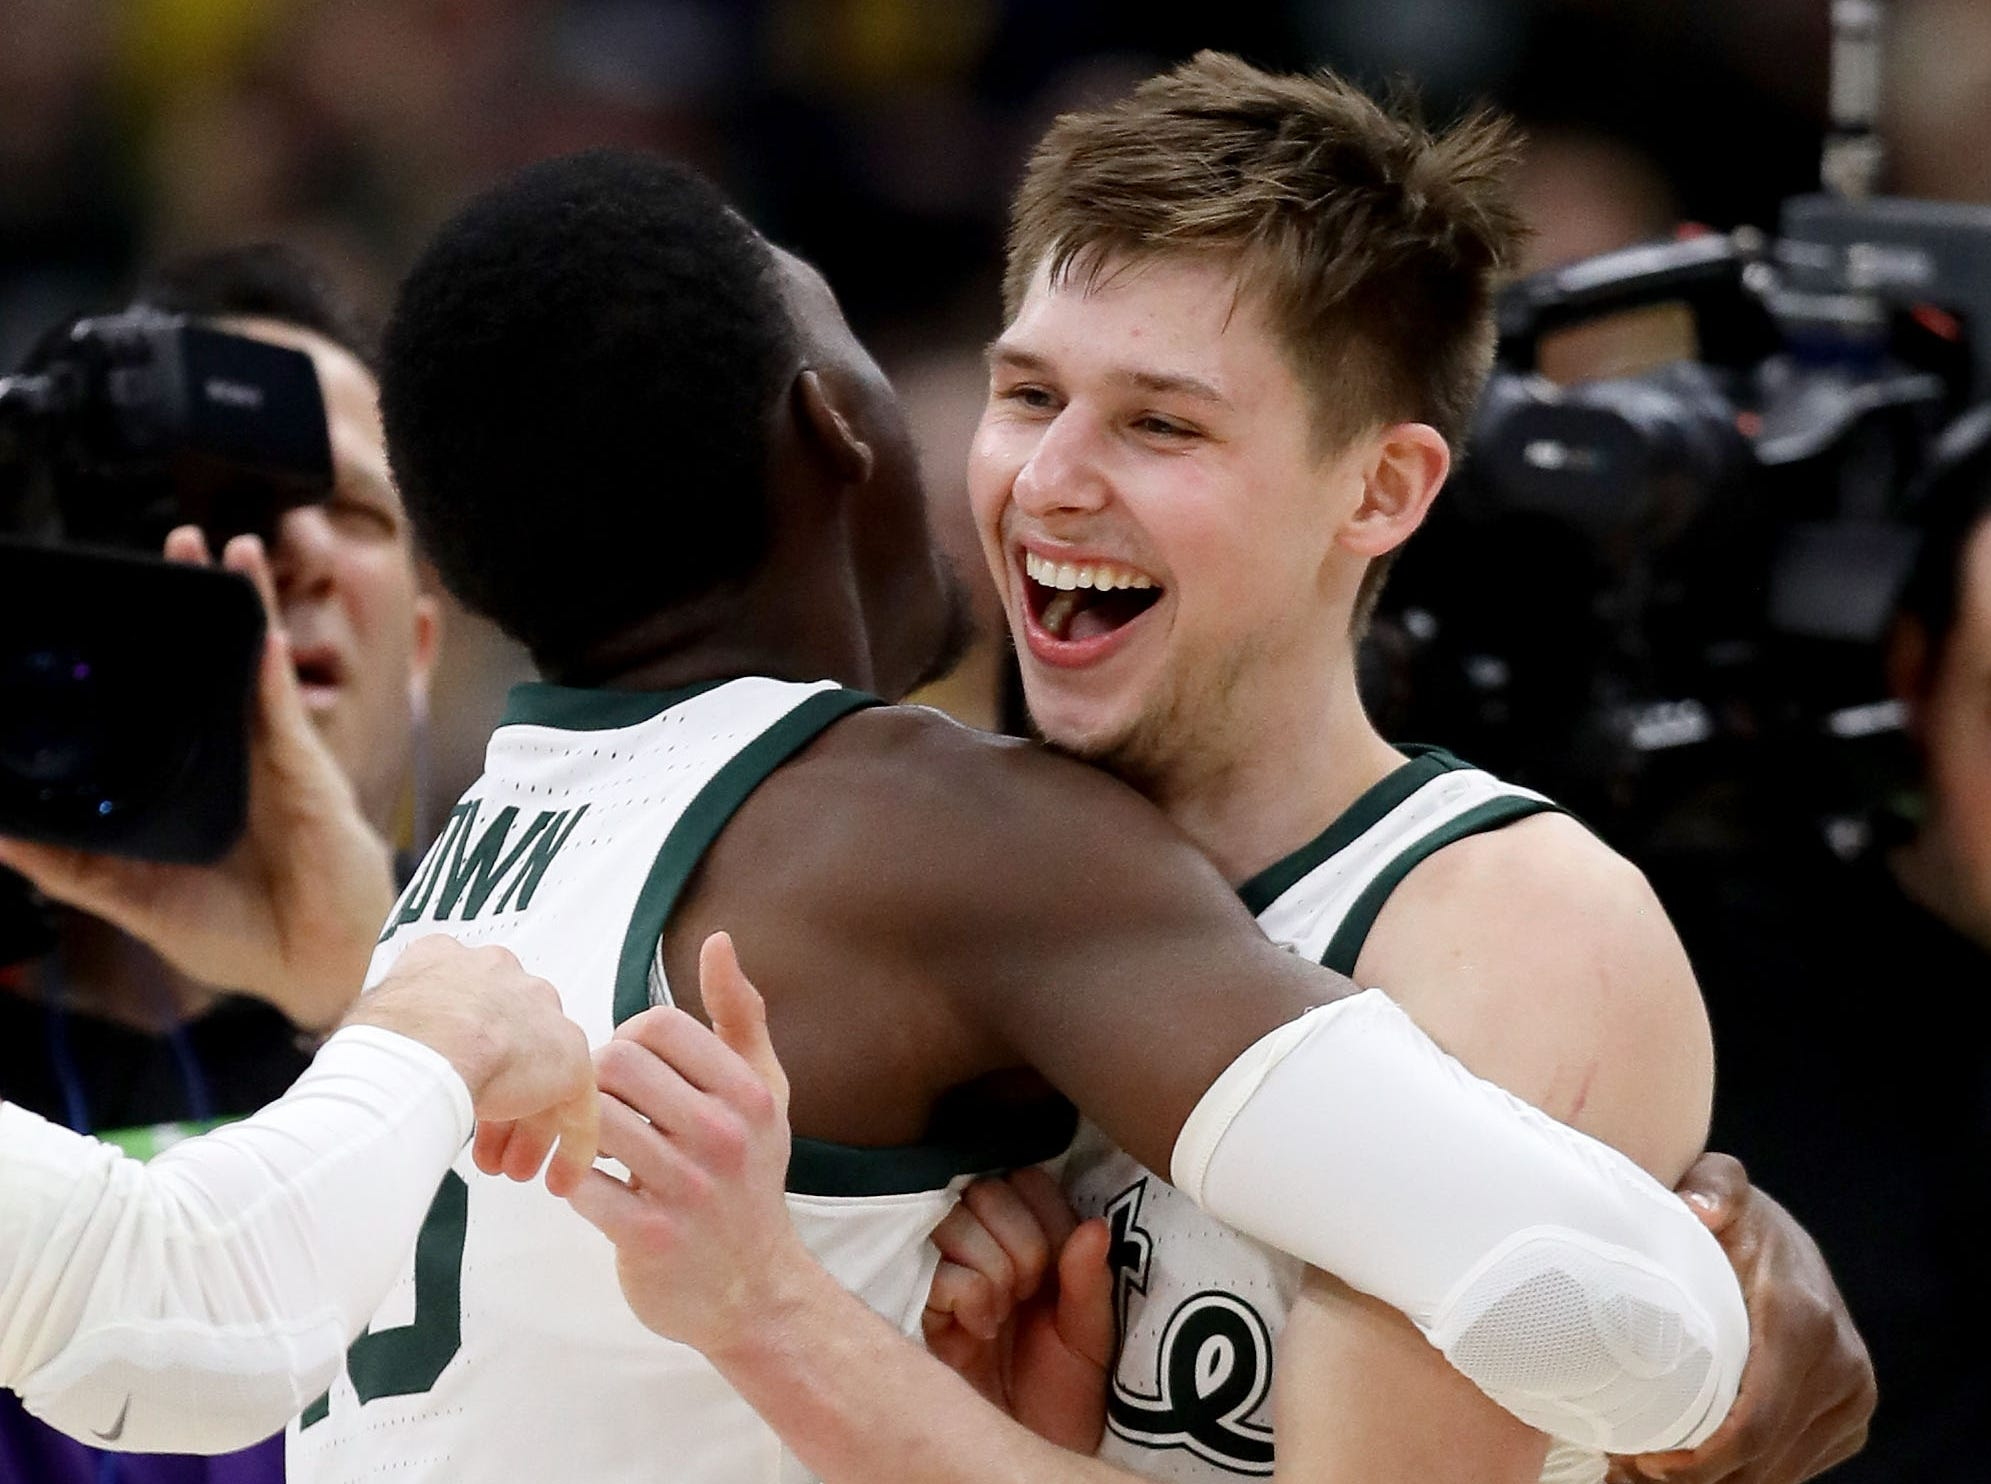 CHICAGO, ILLINOIS - MARCH 17:  Gabe Brown #13 and Matt McQuaid #20 of the Michigan State Spartans celebrate after beating the Michigan Wolverines 65-60 in the championship game of the Big Ten Basketball Tournament at the United Center on March 17, 2019 in Chicago, Illinois. (Photo by Jonathan Daniel/Getty Images)